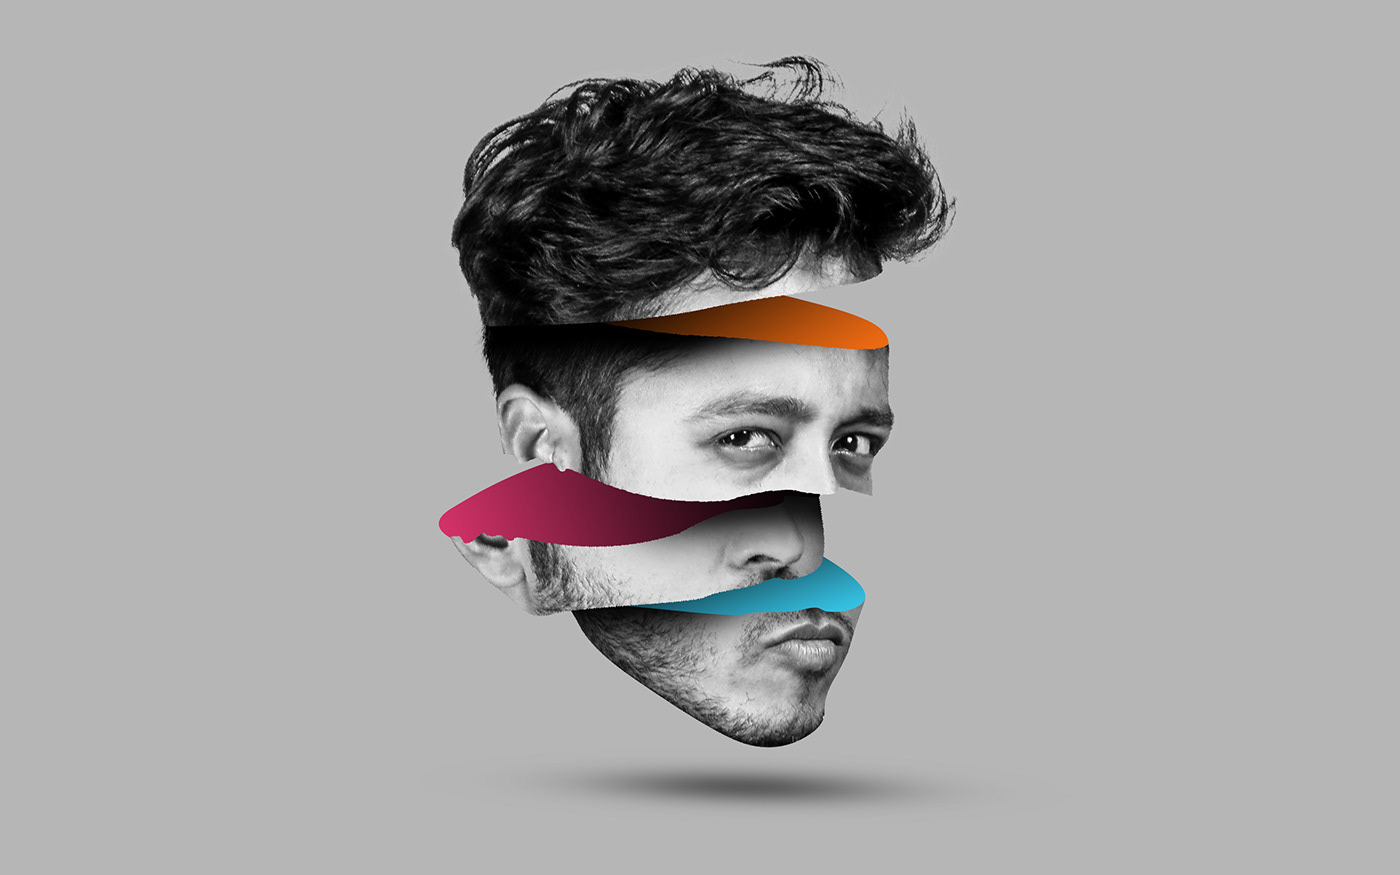 Cc Tutorial Sliced Head Manipulation Photoshop Cc Tutorial On Behance